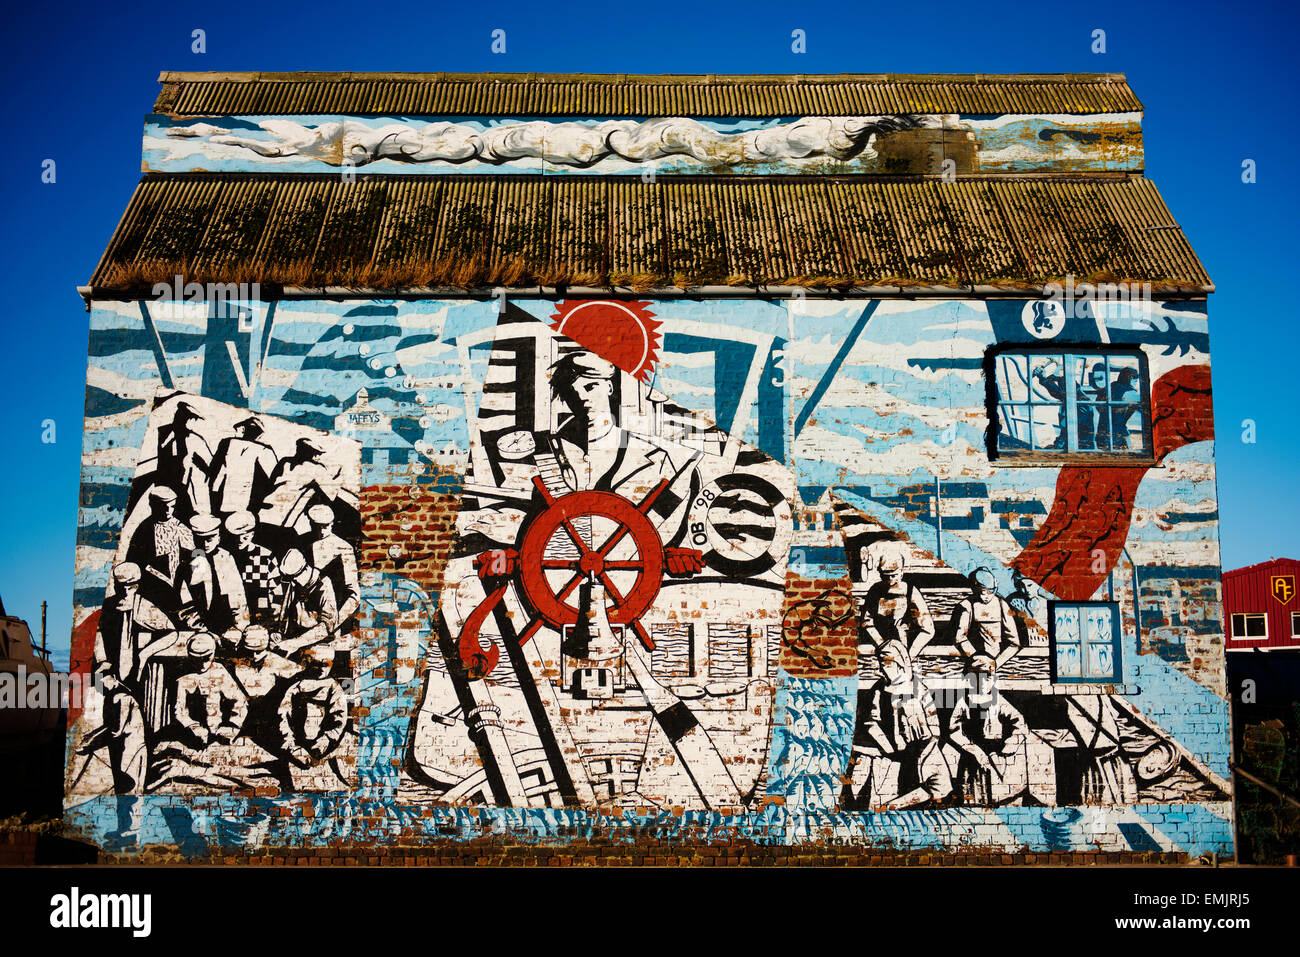 Mural reflecting Mallaig's seafaring history on a building in the port area. - Stock Image